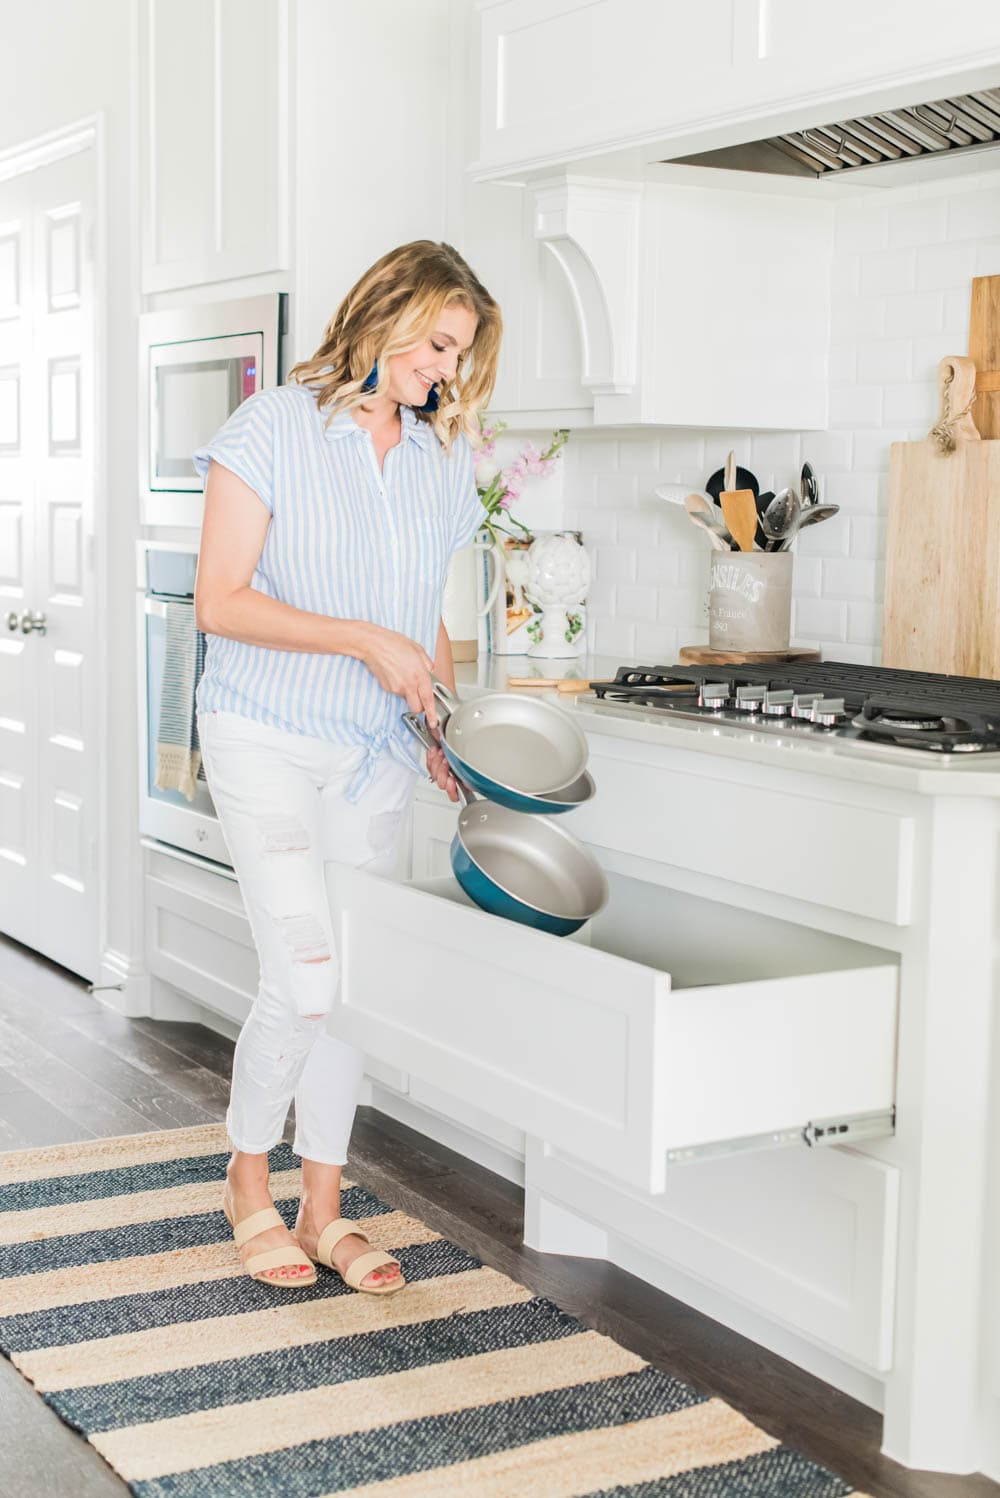 Refresh your kitchen with these tips and ideas for effortless and stylish functional items at affordable prices! #ad #AllAtJCP